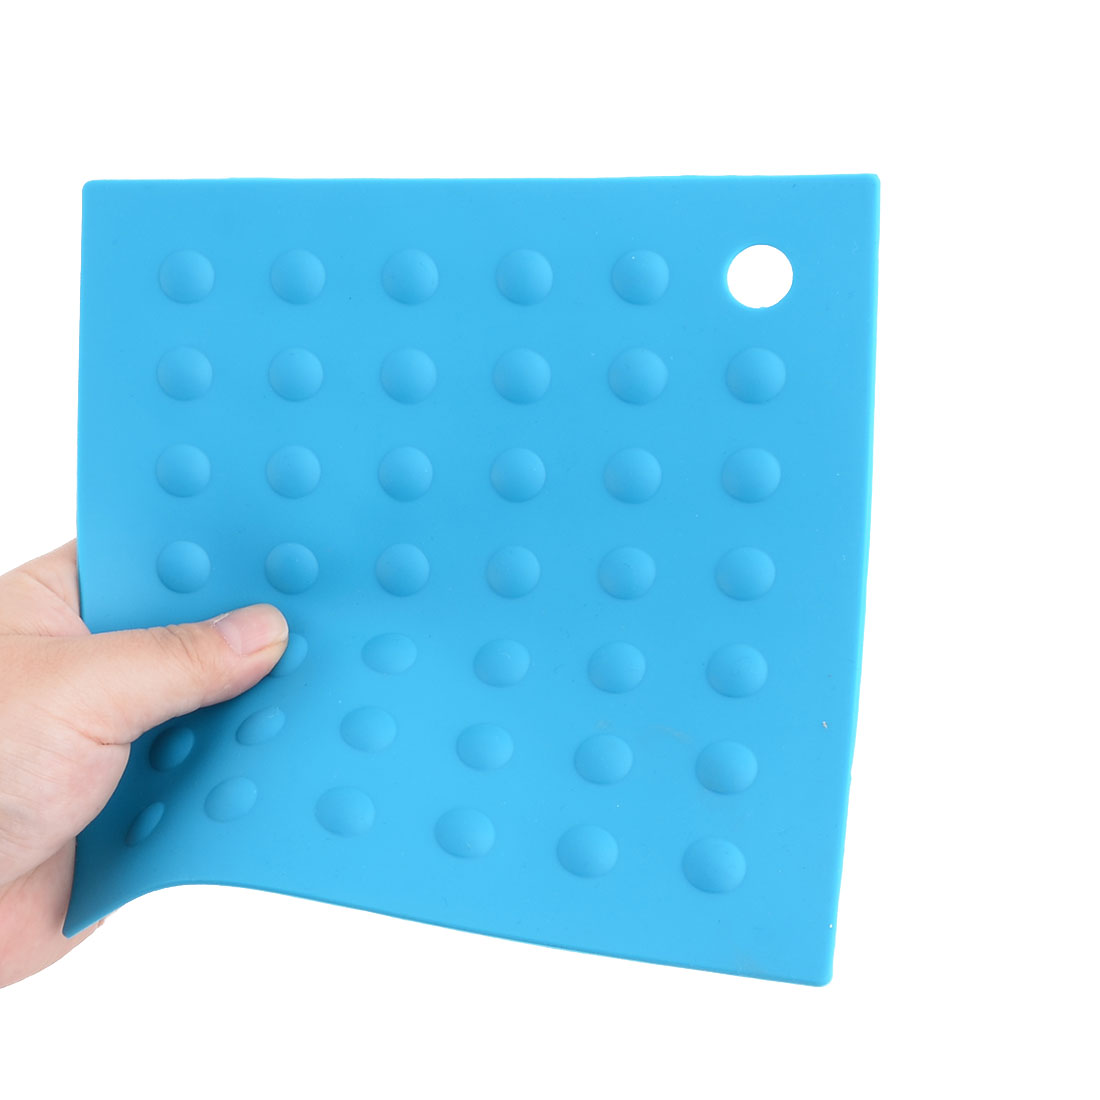 Silicone Square Heat Resistant Bowl Plate Mat Table Protection Pad Teal Blue - image 3 of 4